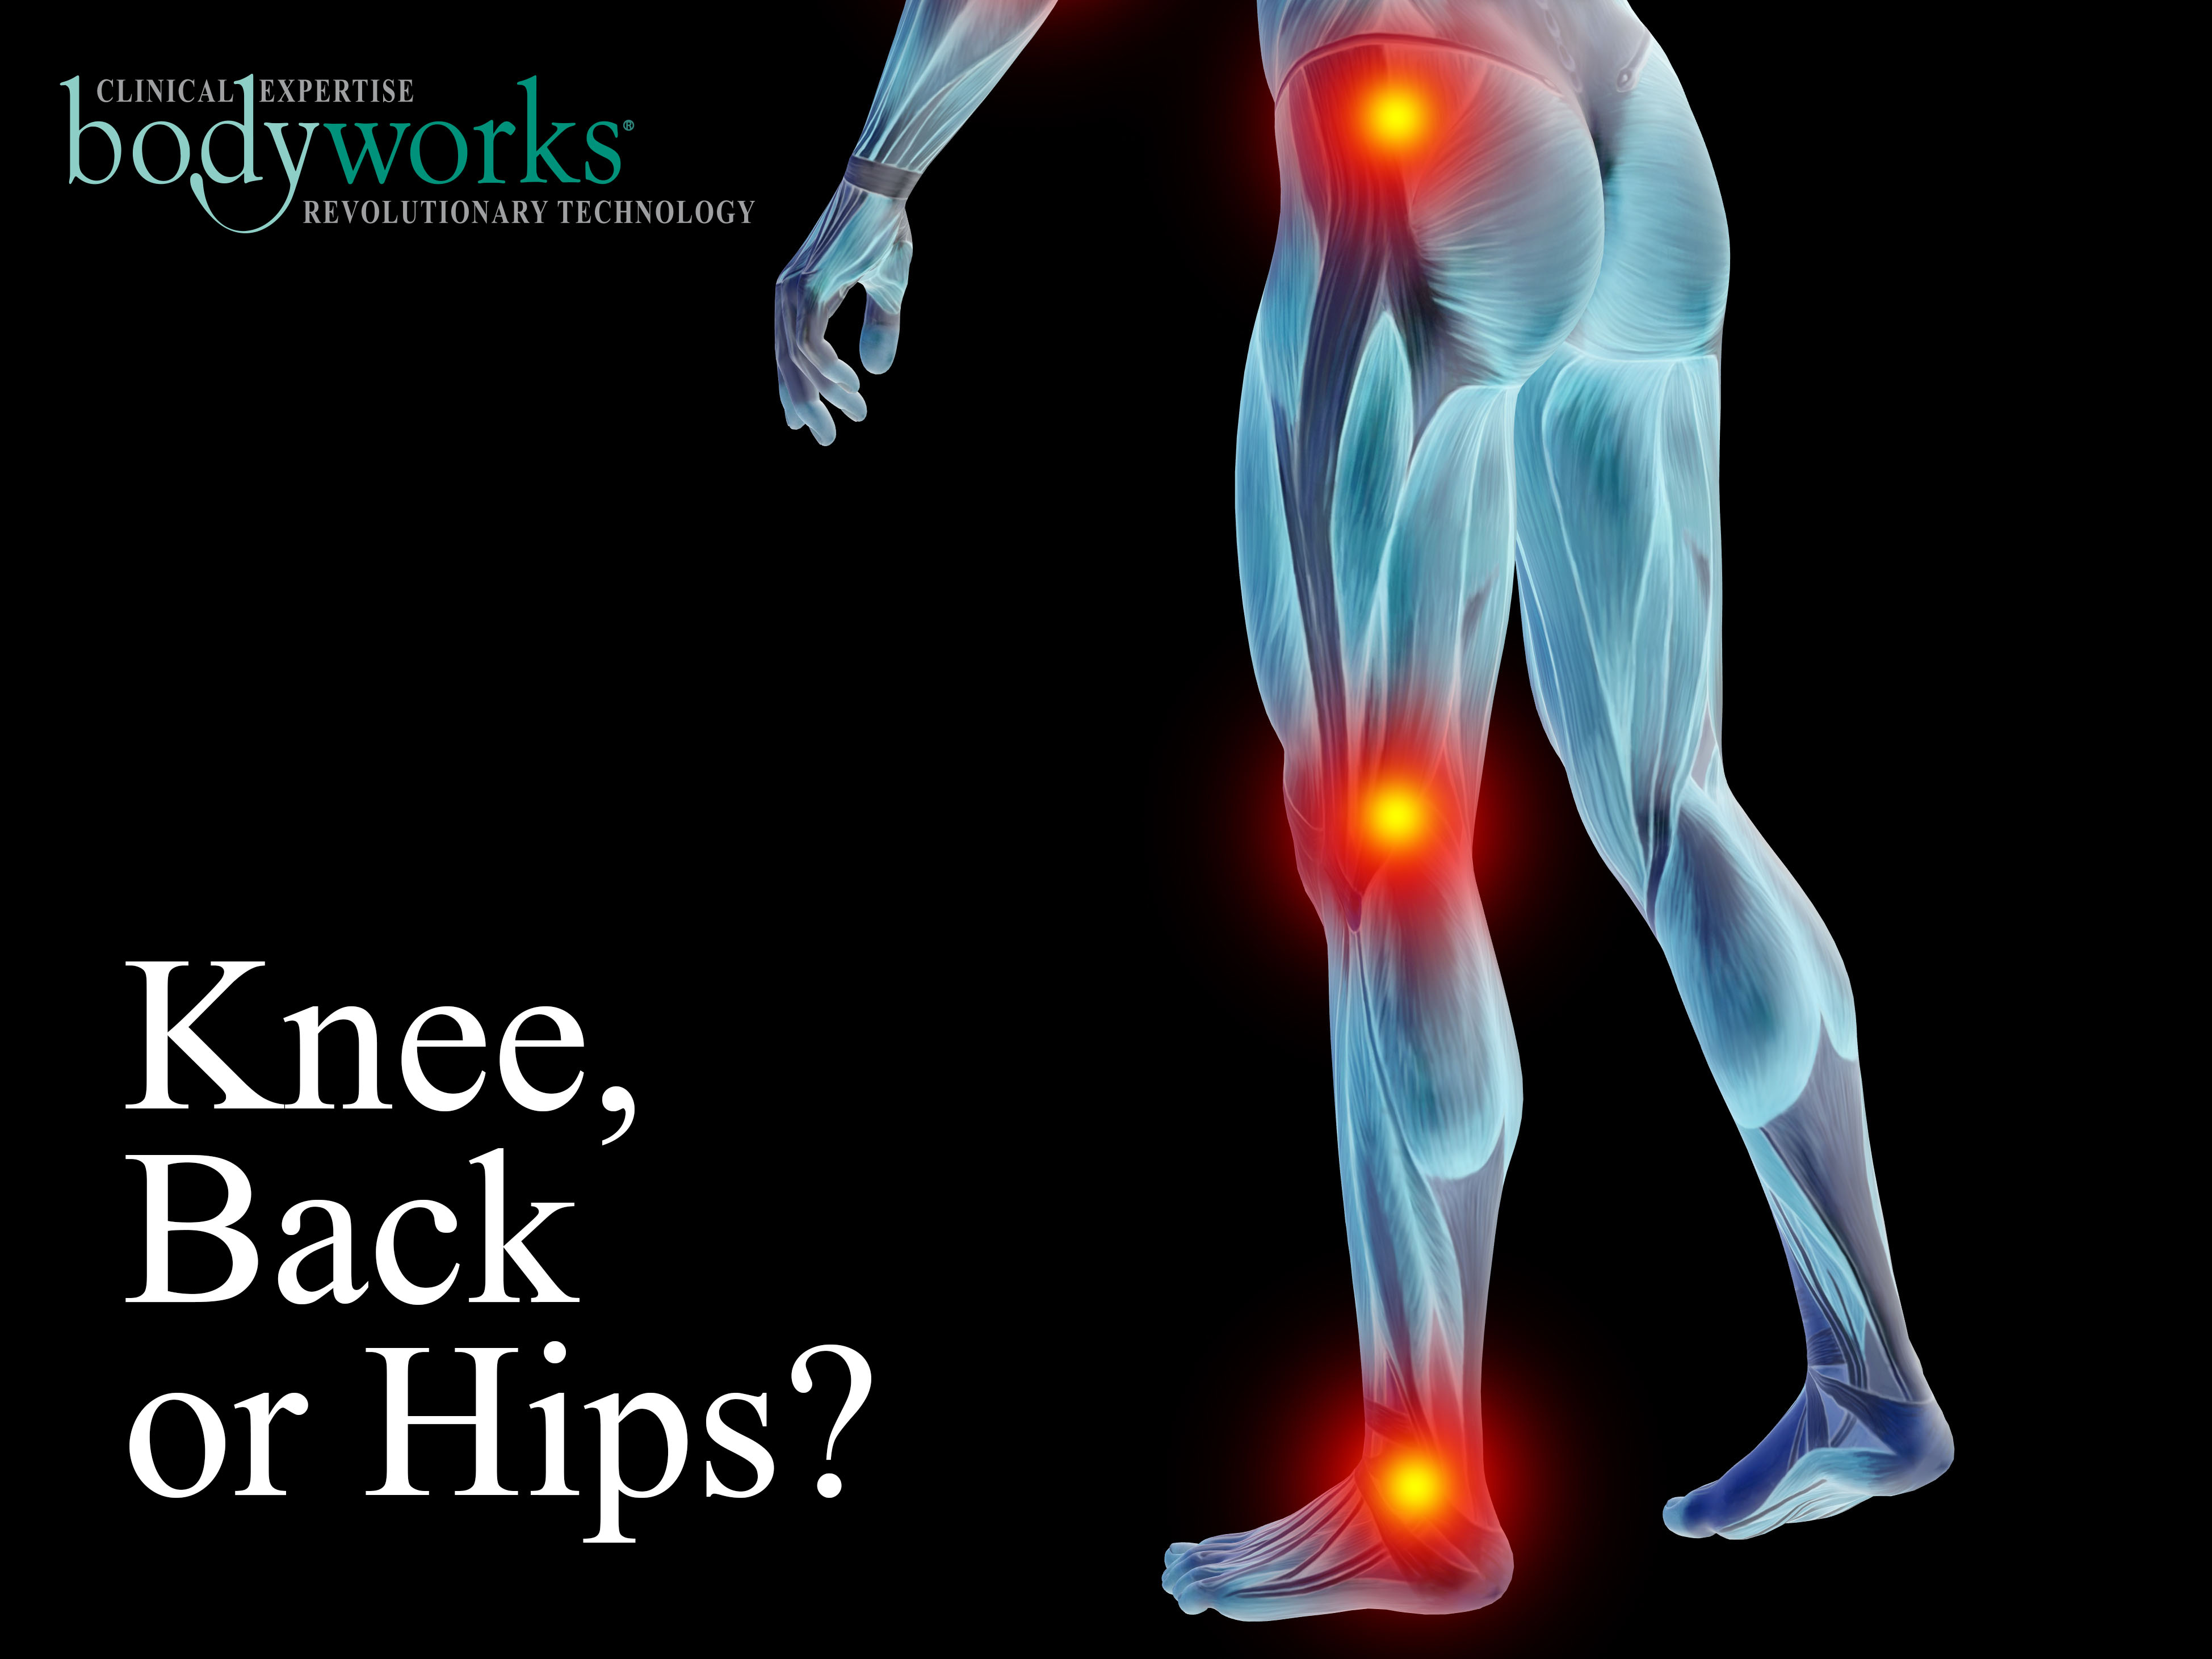 Knee Back Hip - referred pain. Consultant Estelle Mitchell at Bodyworks